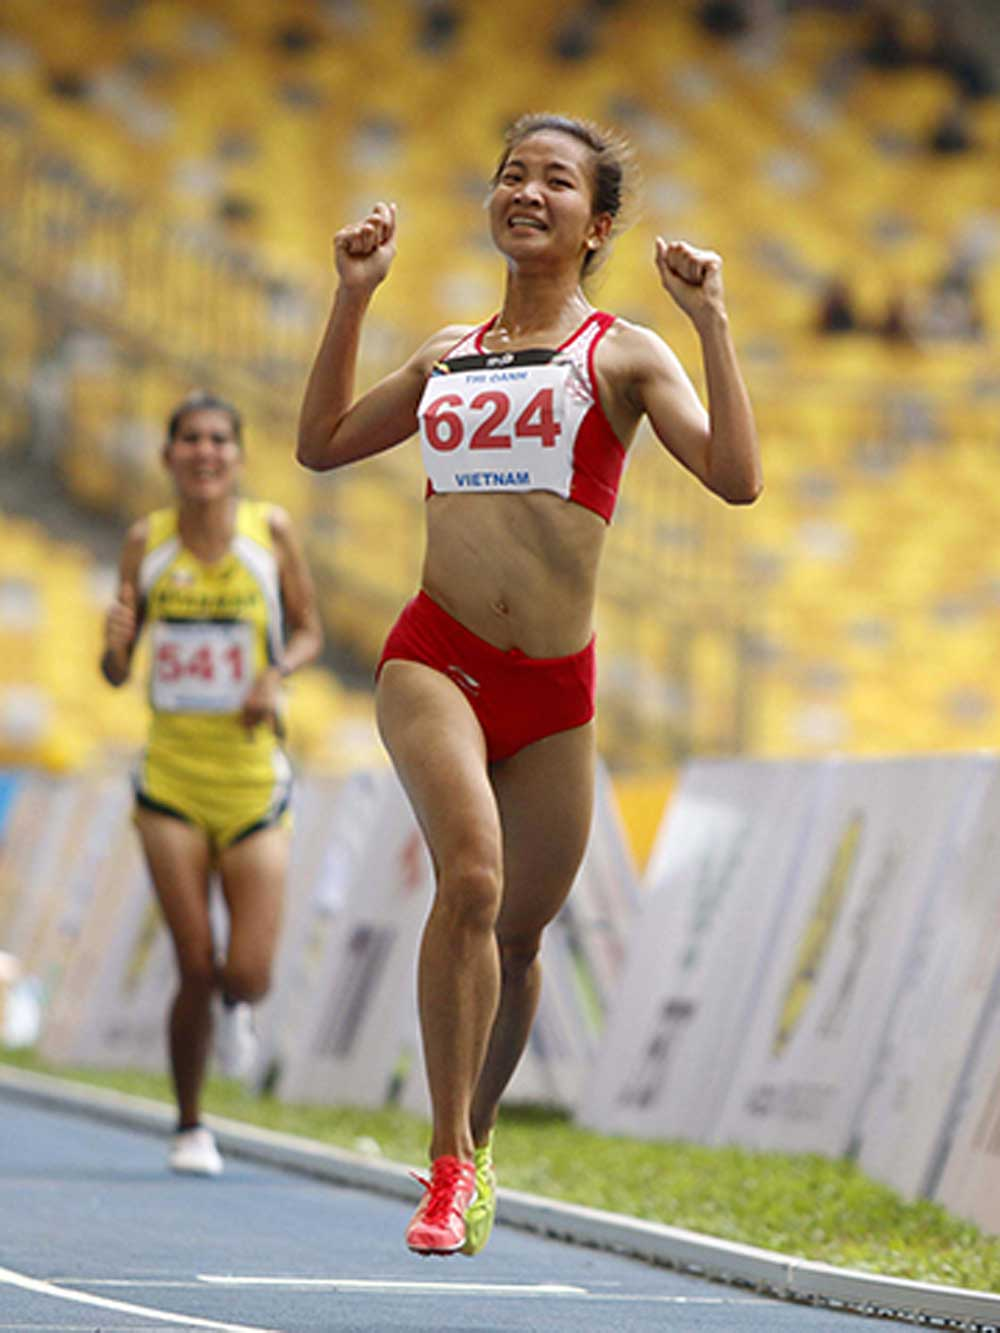 Athletes, Speed Cup, HCM City, Thong Nhat Speed Cup,  first professional athletics tournament,  easing of social distancing